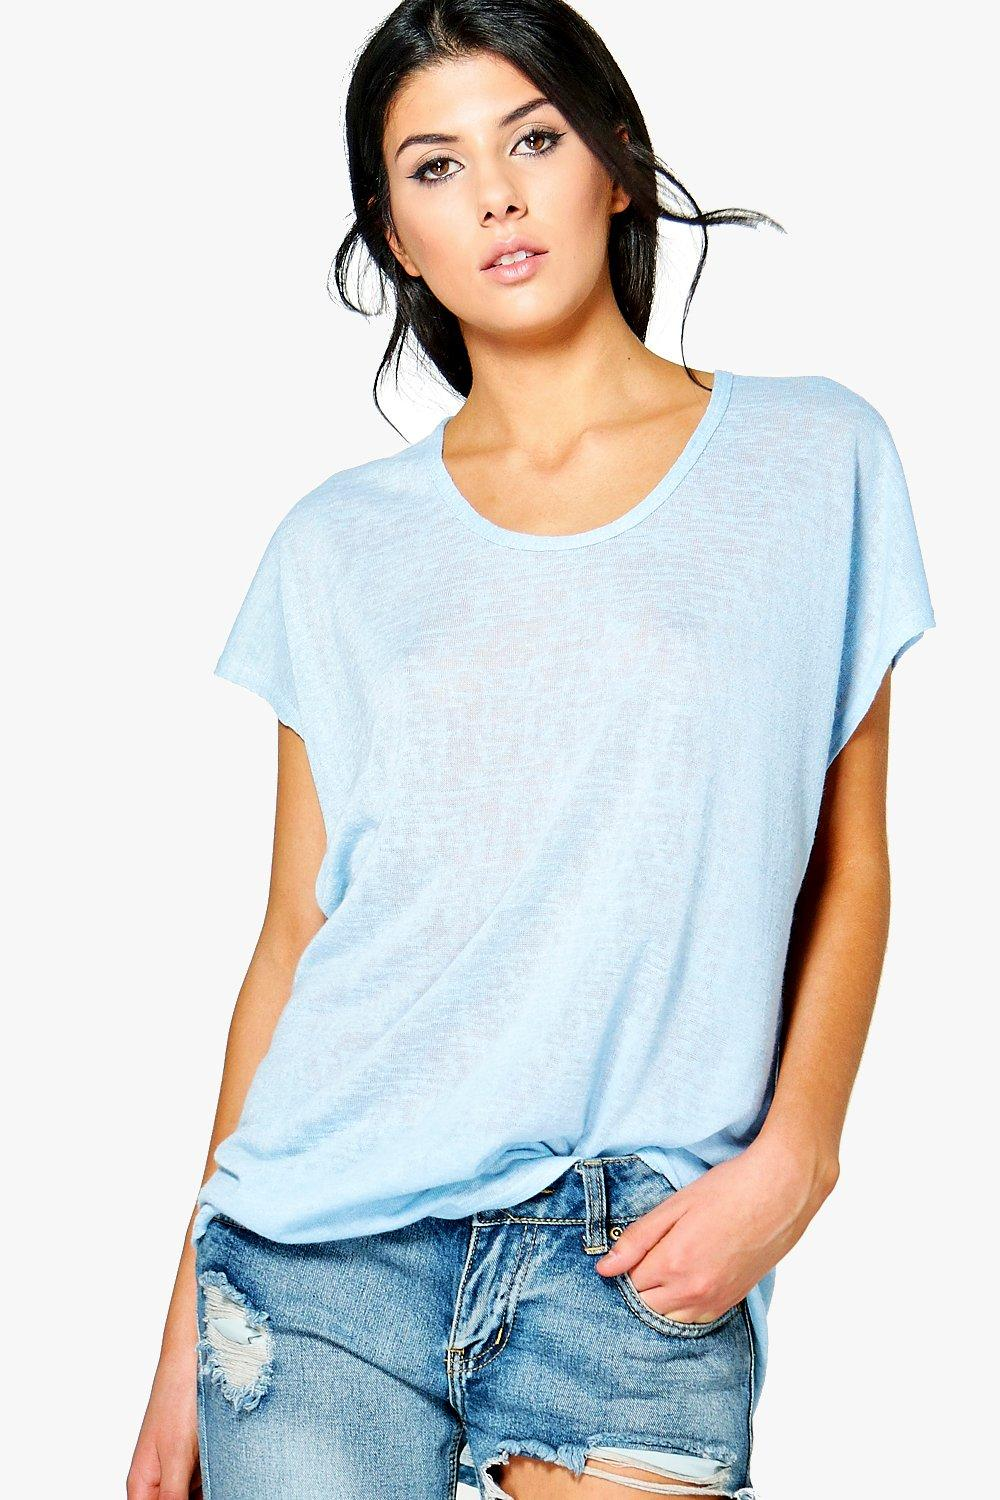 Women's Tees - Oversized T Shirts & V Neck T Shirts. Lately, the fashion world has been holding up refined and sophisticated button-up blouses under the spotlight as shirt of choice.